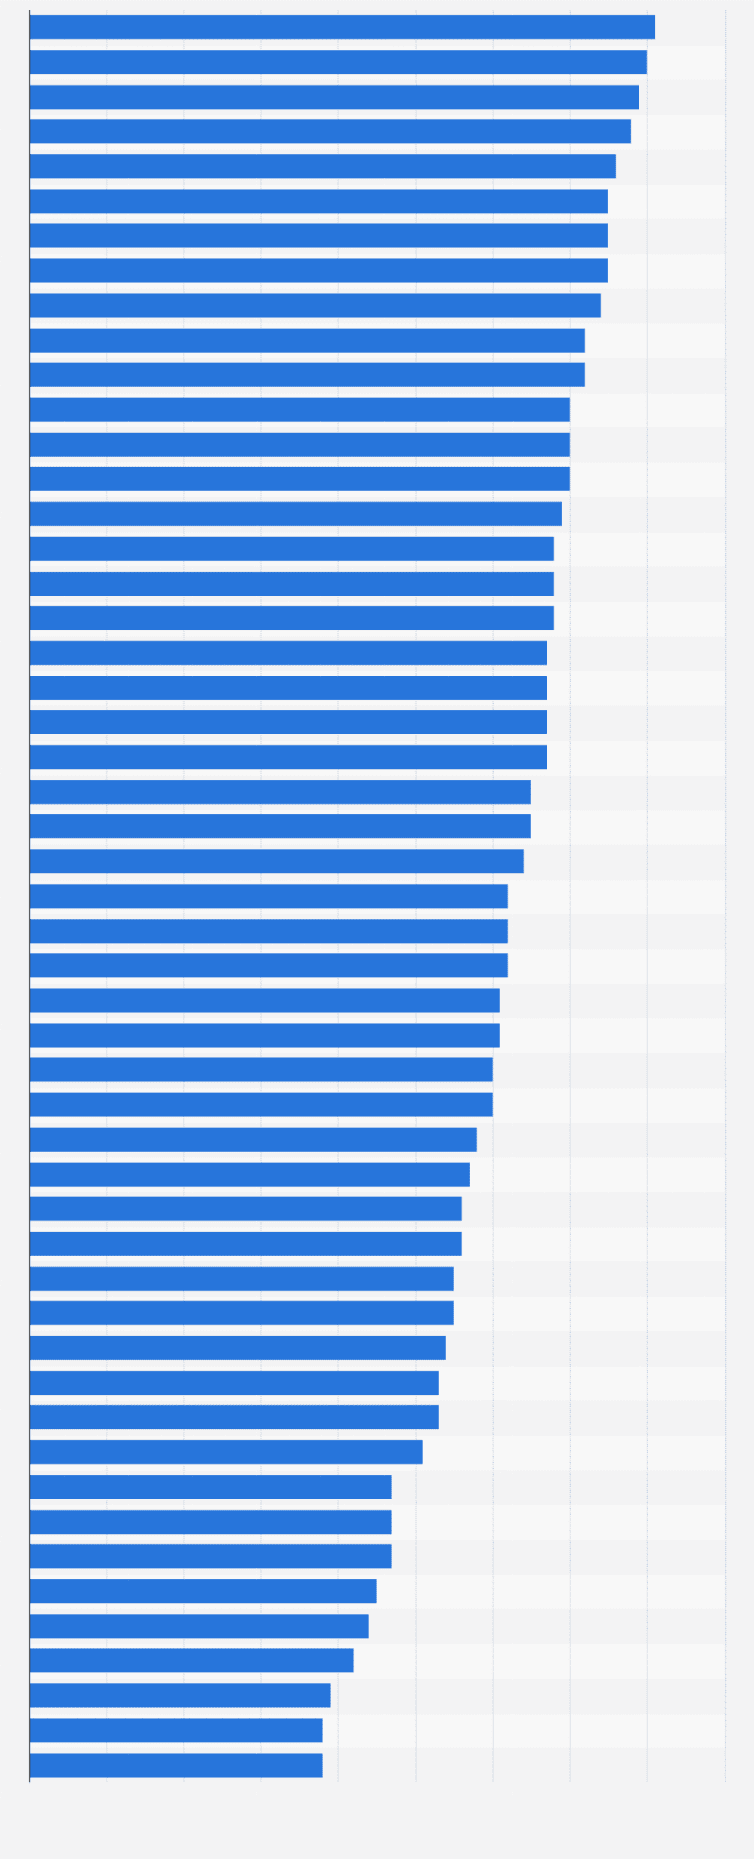 Made-In Country Index - perception of products made in Italy